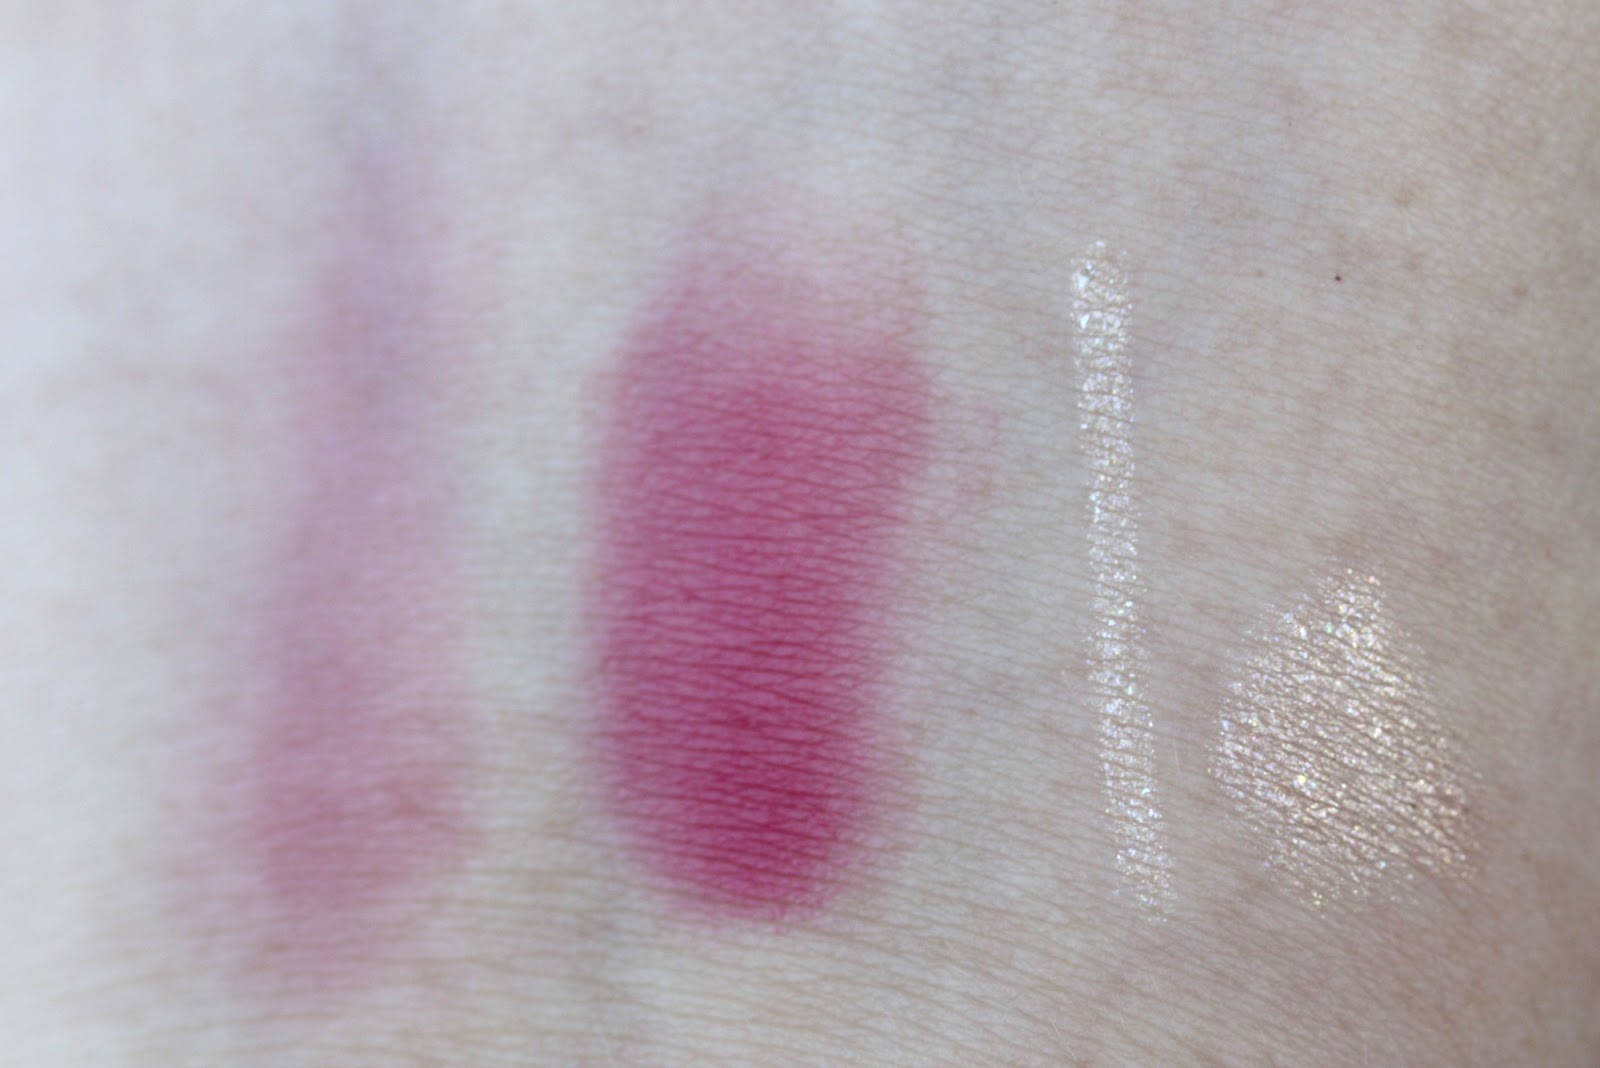 Ipsy Glam Bag January 2014 - First Impressions - Elizabeth Mott Smooth Shadow Creamy Eye Pencil in Pearl and Mica Beauty Cosmetics Tinted Lip Balm #06 in Fiesta swatches, indirect light | Manicurity.com